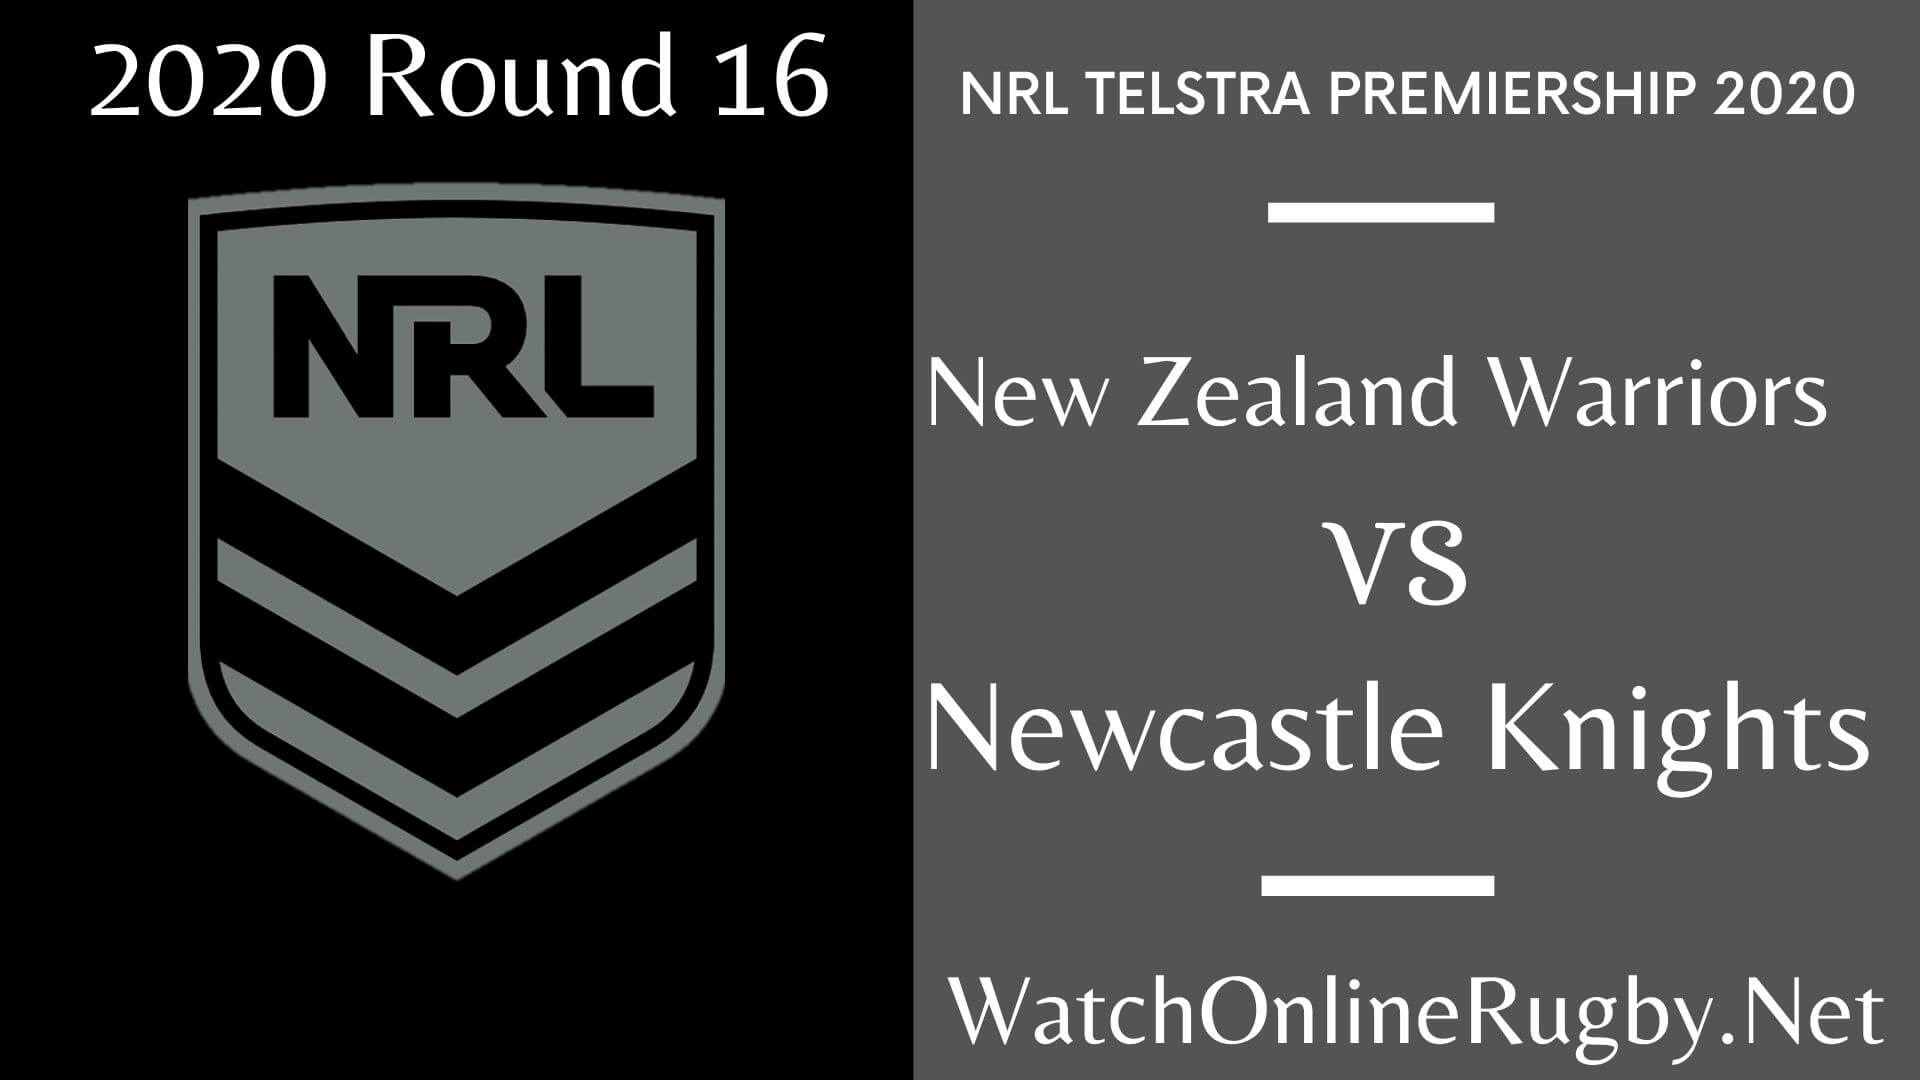 Warriors Vs Knights Highlights 2020 Rd 16 NRL Rugby